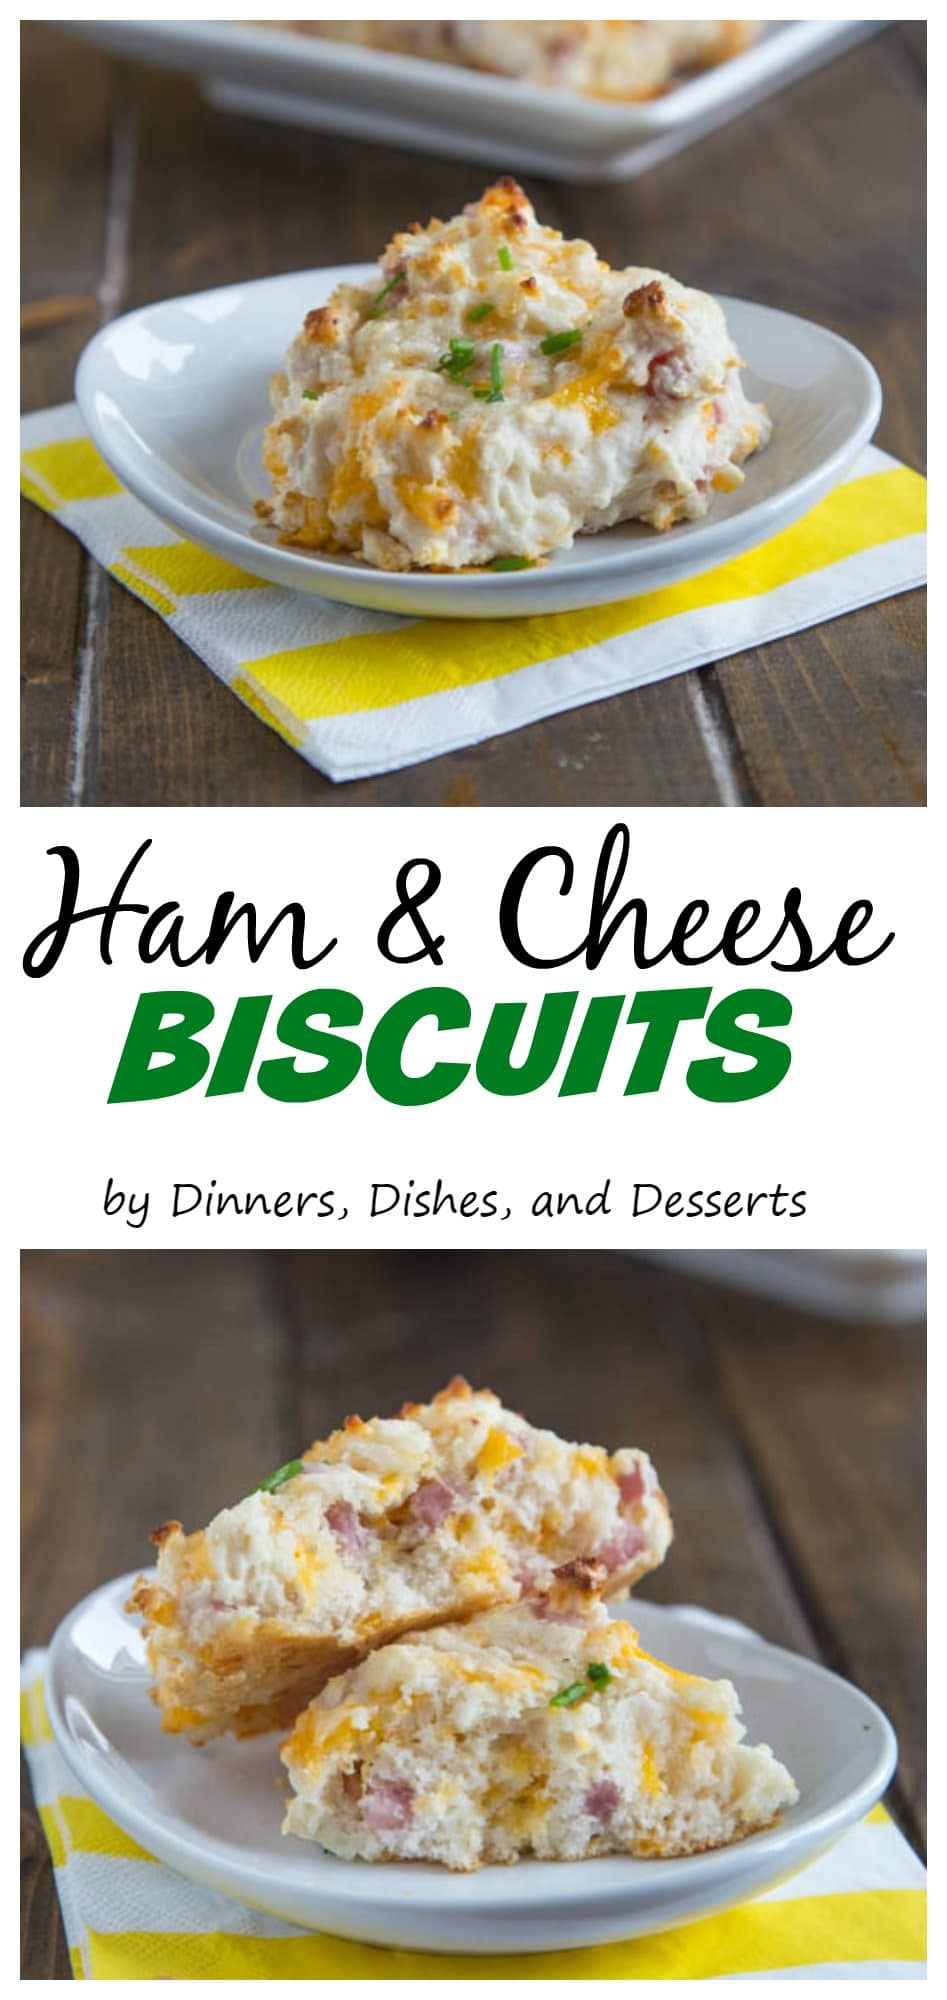 >Ham & Cheese Biscuits - Fluffy drop biscuits full of cheddar cheese and diced ham. A great side dish, or use of leftover ham.